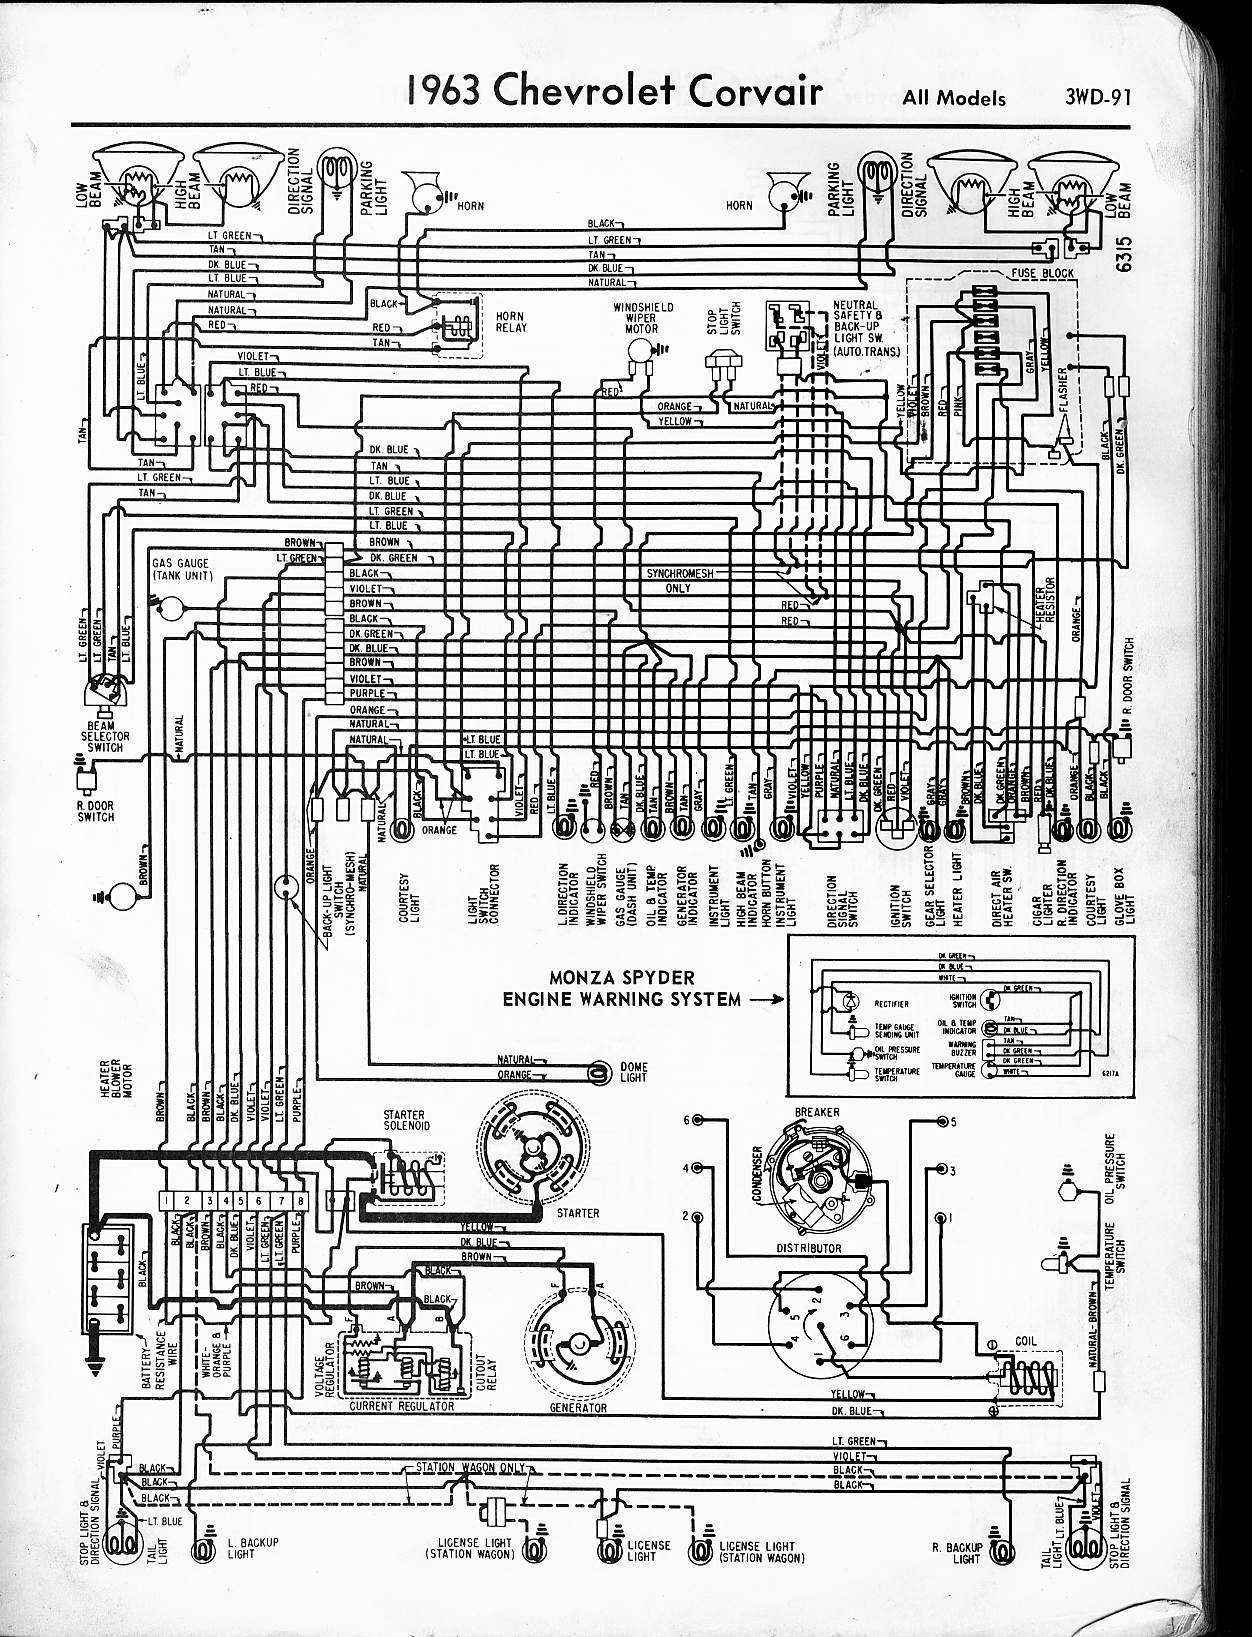 57 65 chevy wiring diagrams rh oldcarmanualproject com 1963 corvette radio wiring diagram 1963 corvette wiper wiring diagram